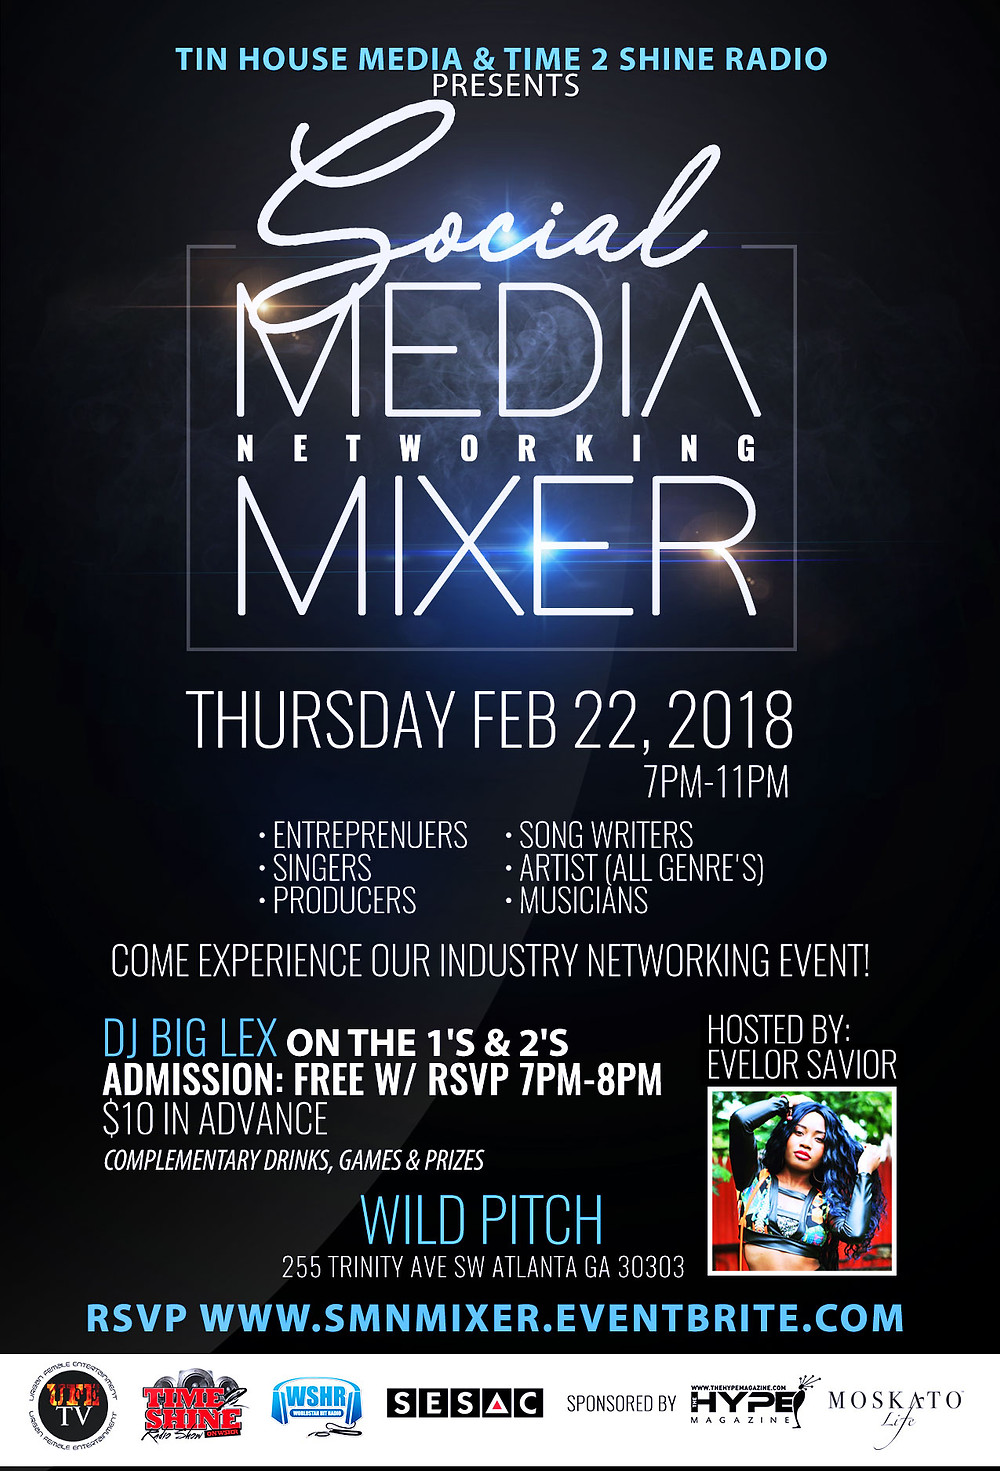 Feb 22nd Entertainment Industry Social Media Networking Mixer @Wild Pitch!